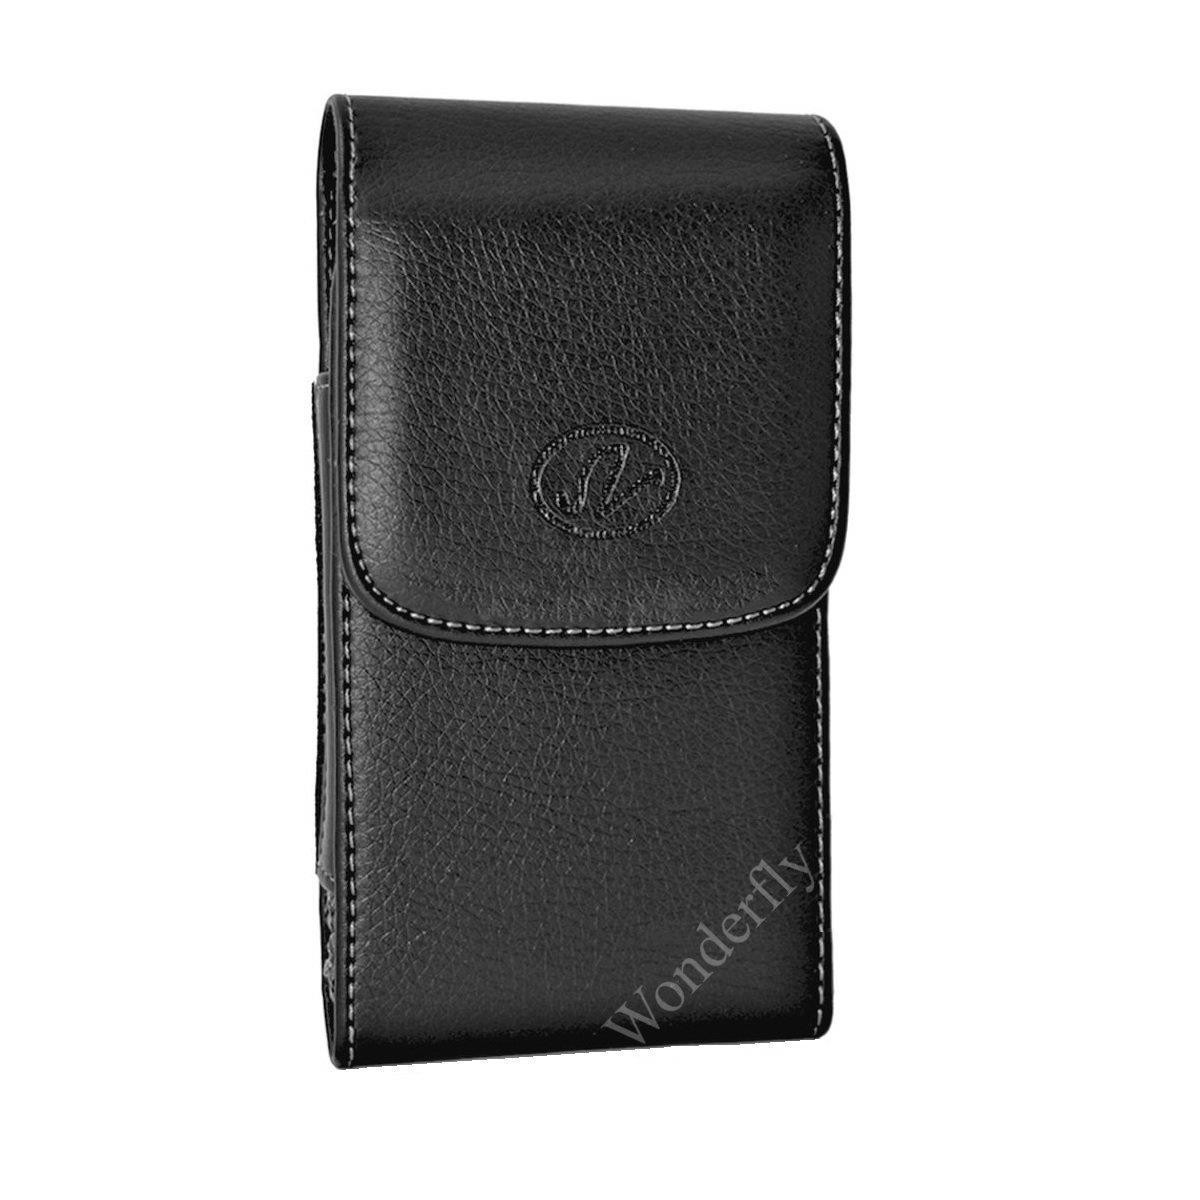 promo code 76116 bf2bf Wonderfly Holster for Apple iPhone 8 Plus, iPhone 7 Plus, iPhone 6s Plus or  iPhone 6 Plus, a Large Vertical Leather Carrying Case with Rotatable Belt  ...